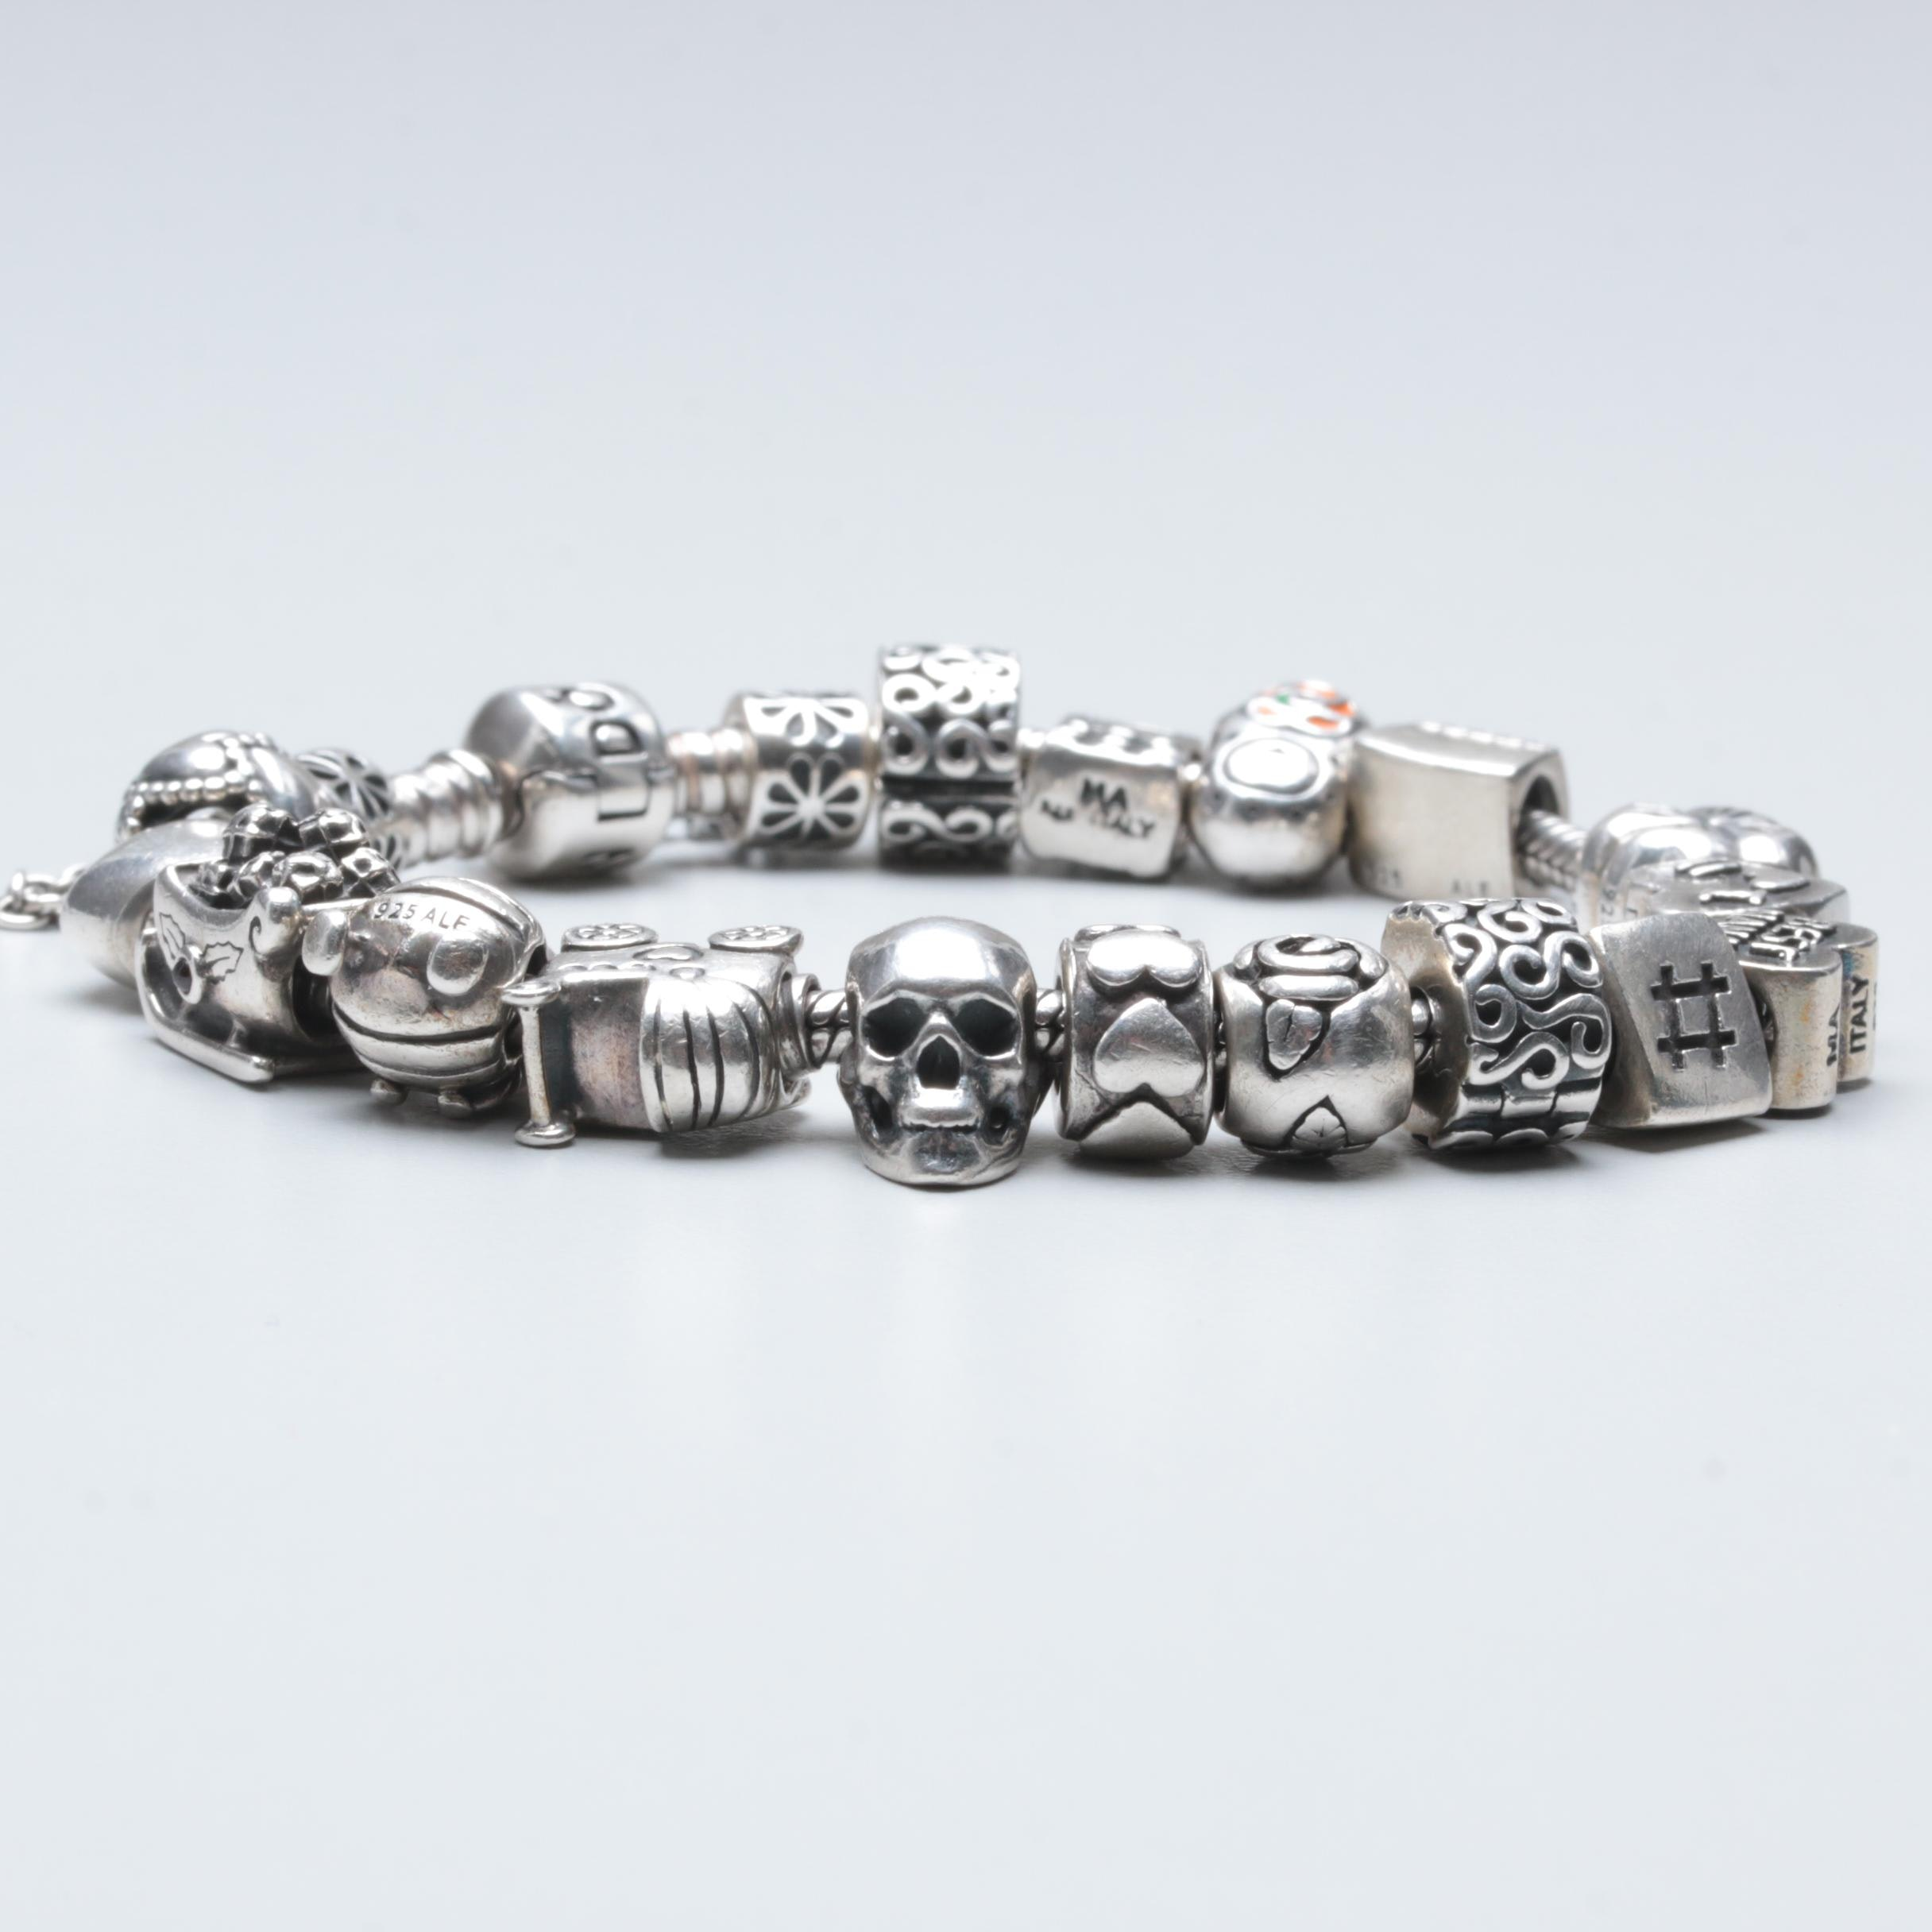 Pandora Sterling Silver Charm Bracelet with Sterling Charms